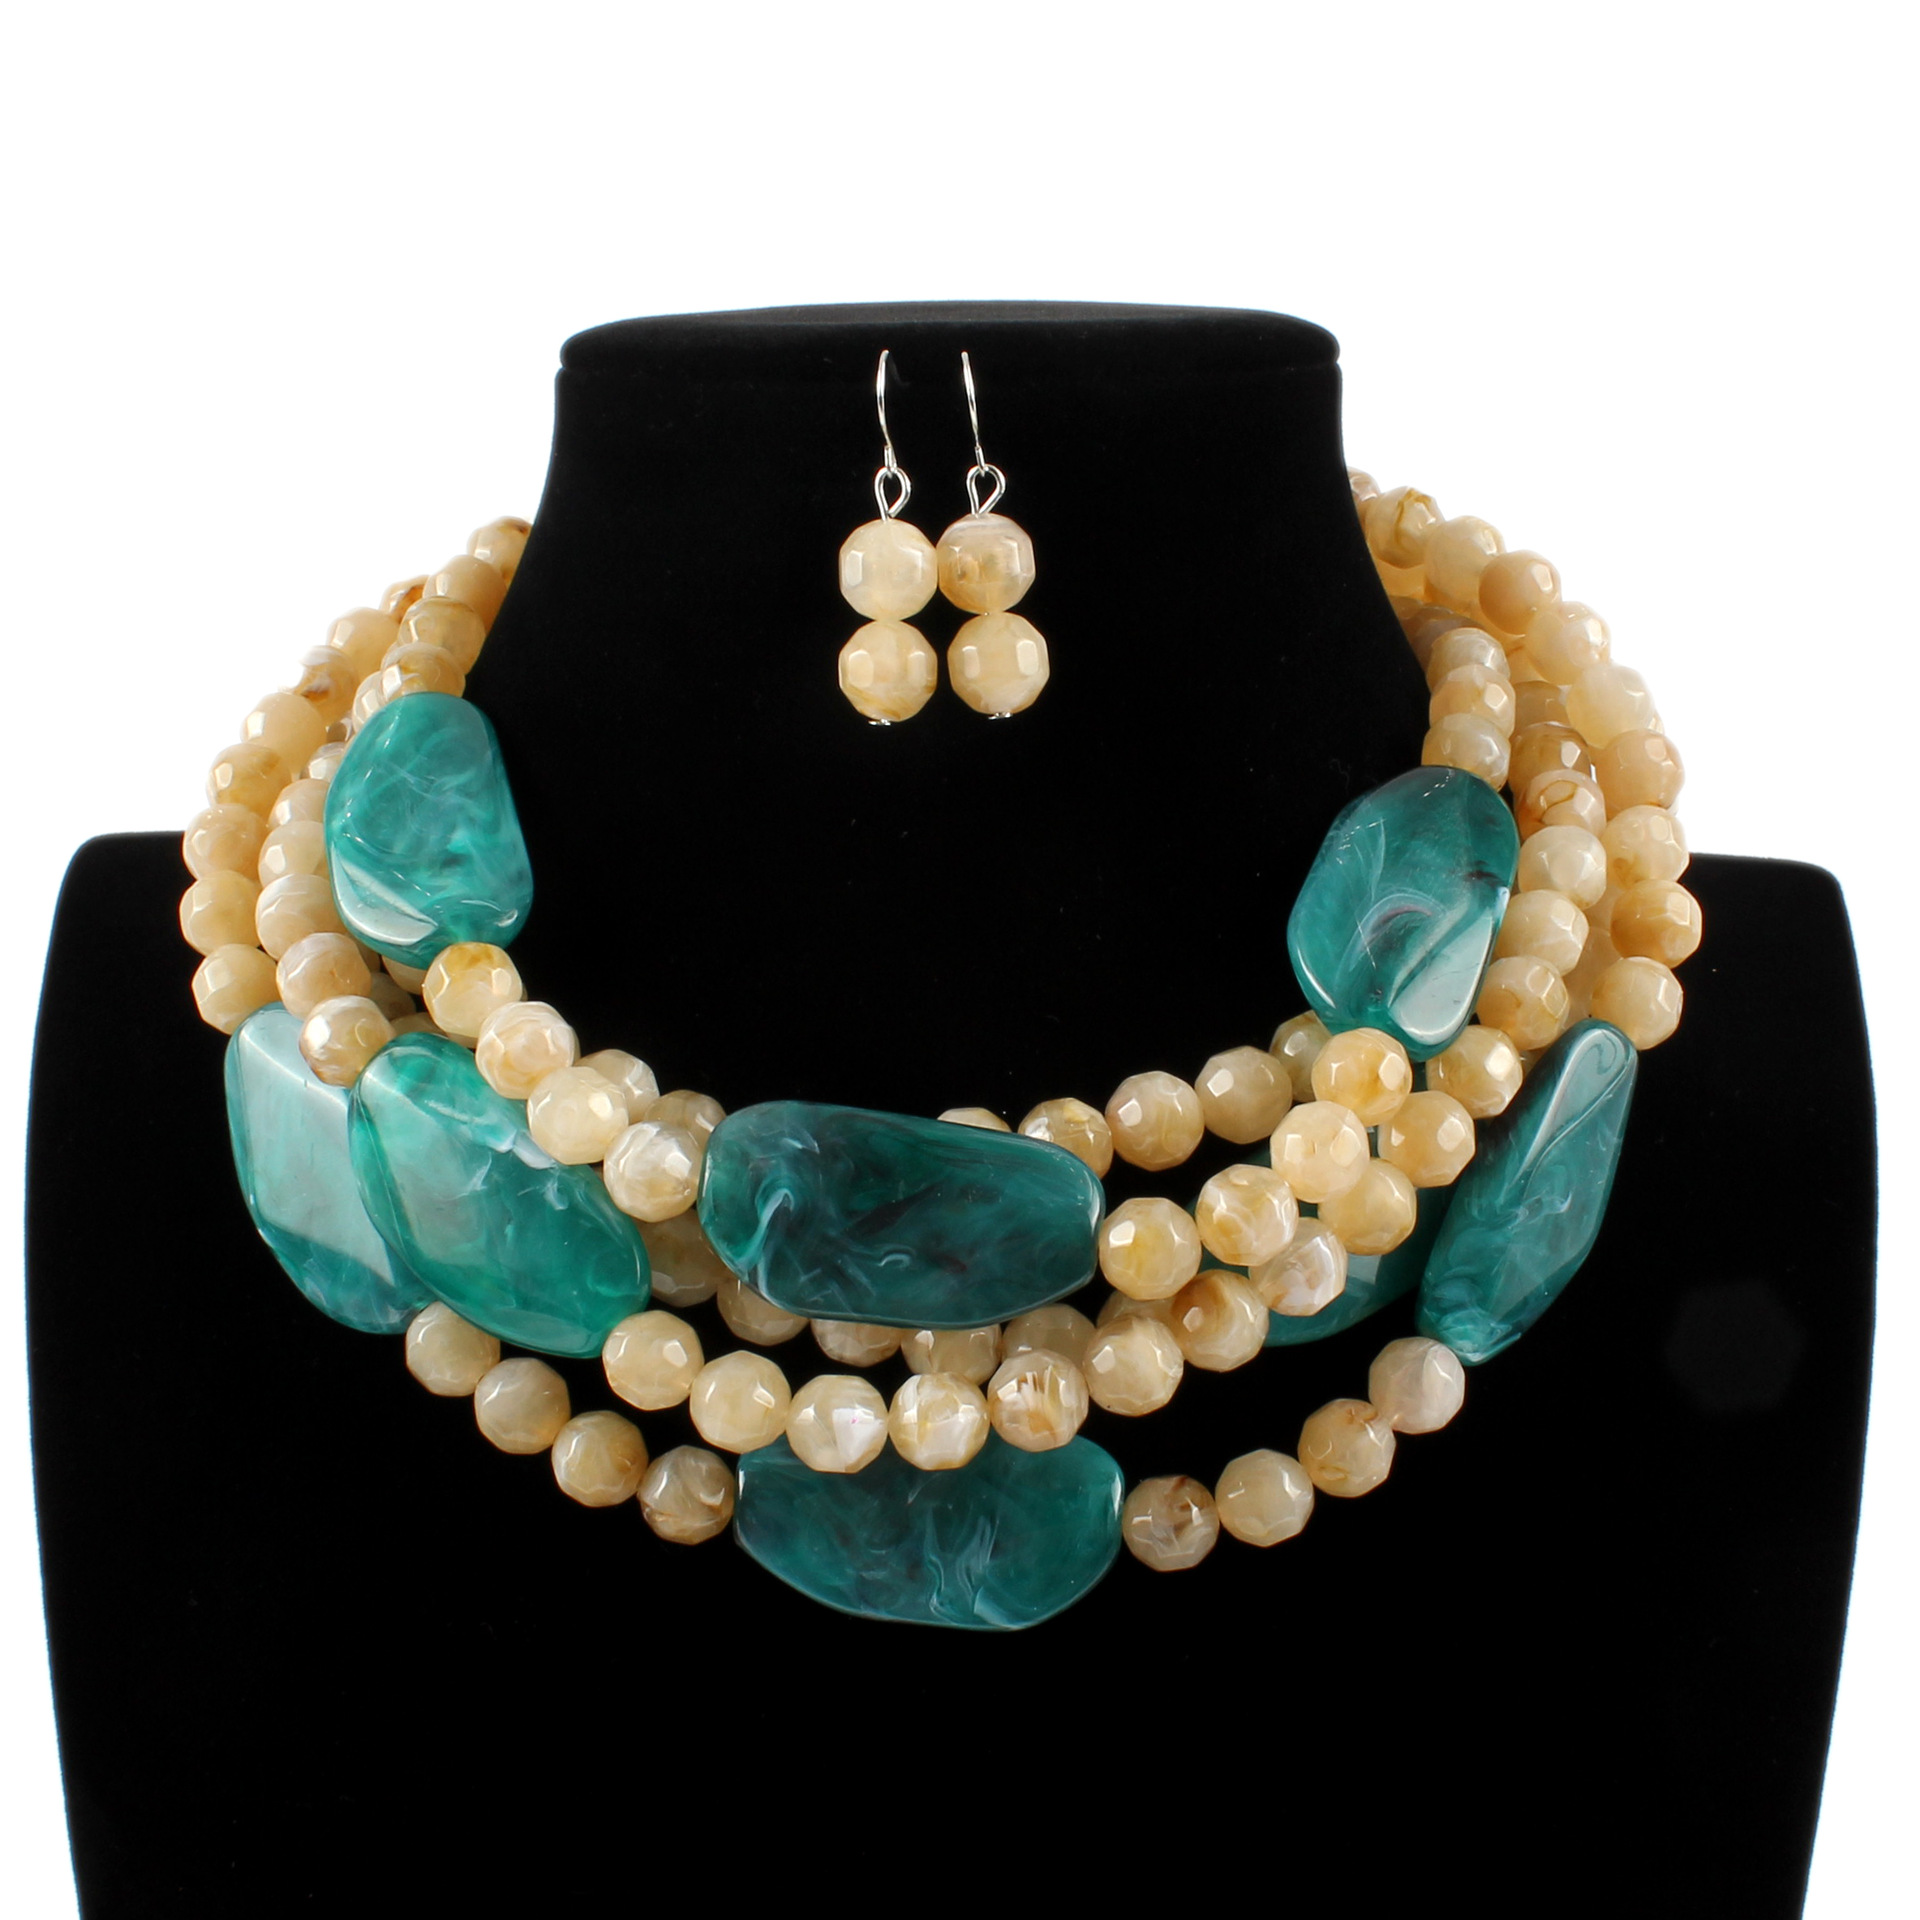 2019 New Women Bohemian Jewelry Set Boho Multi Layer Resin Strand Collier African Beads Necklace Earrings Afrikaanse Ketting2019 New Women Bohemian Jewelry Set Boho Multi Layer Resin Strand Collier African Beads Necklace Earrings Afrikaanse Ketting